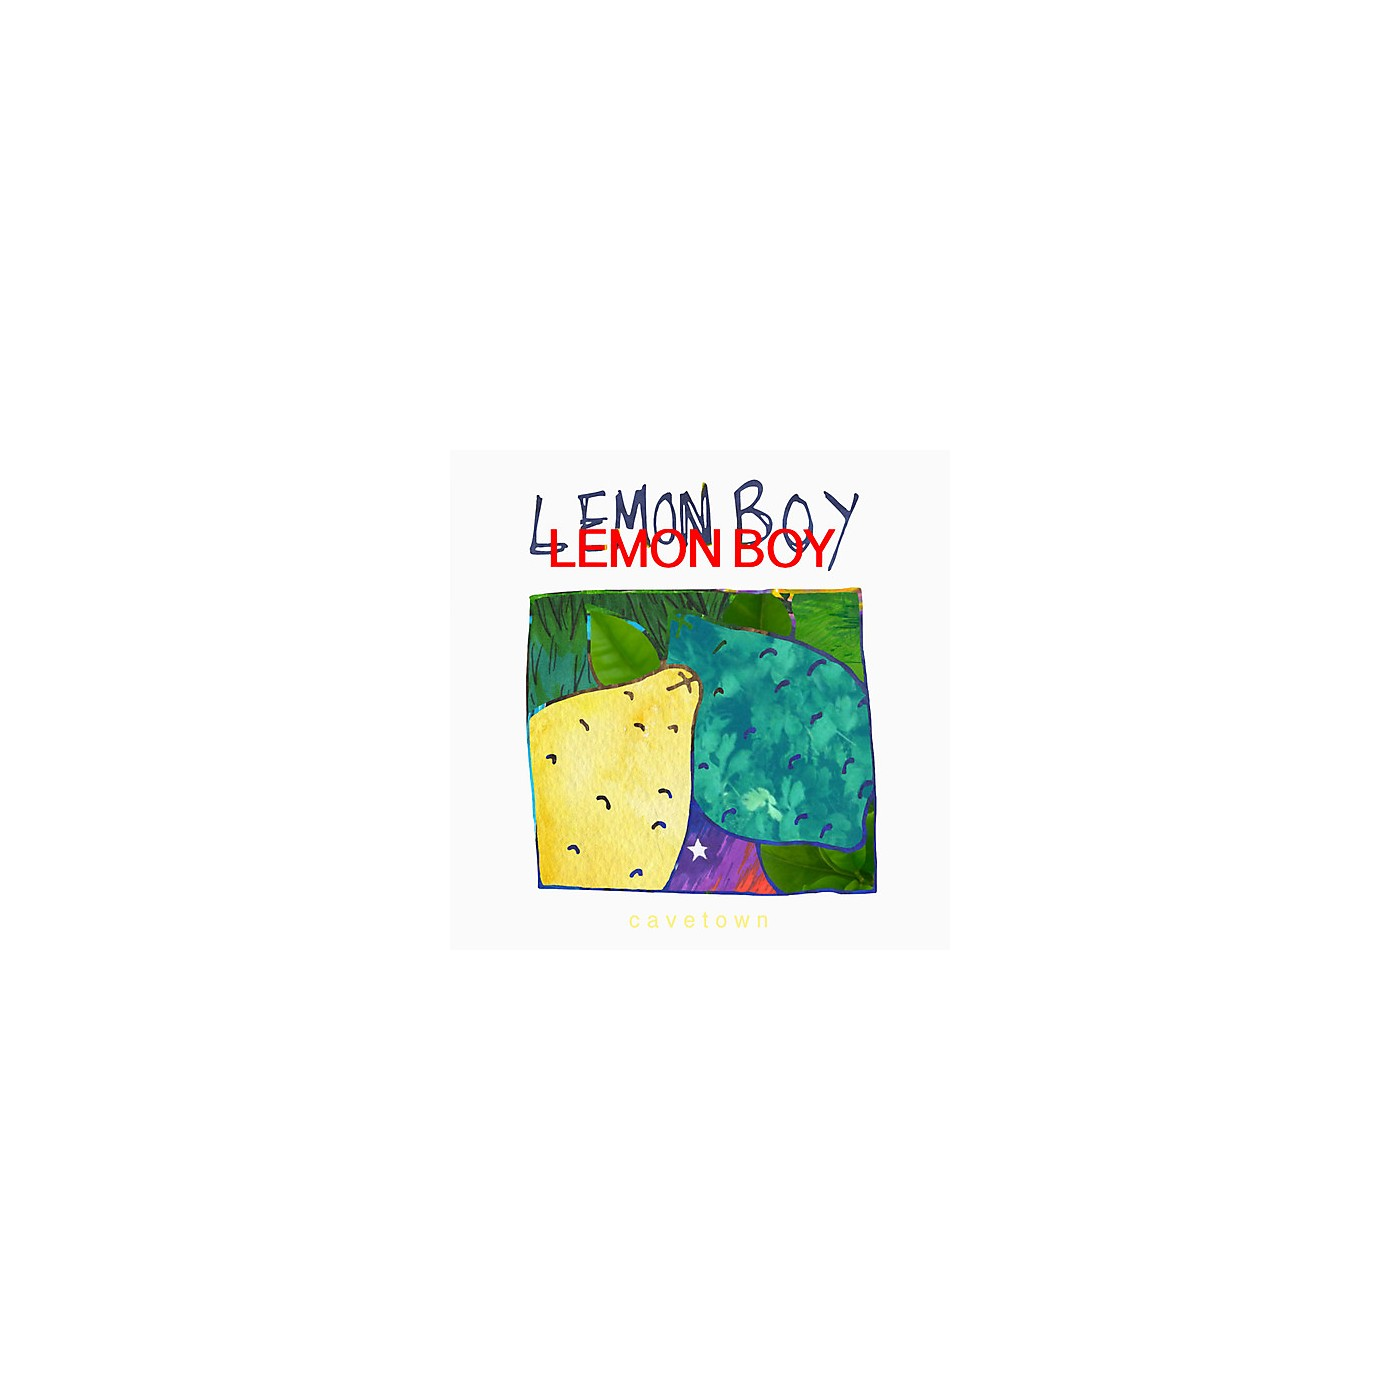 Alliance Cavetown - Lemon Boy thumbnail